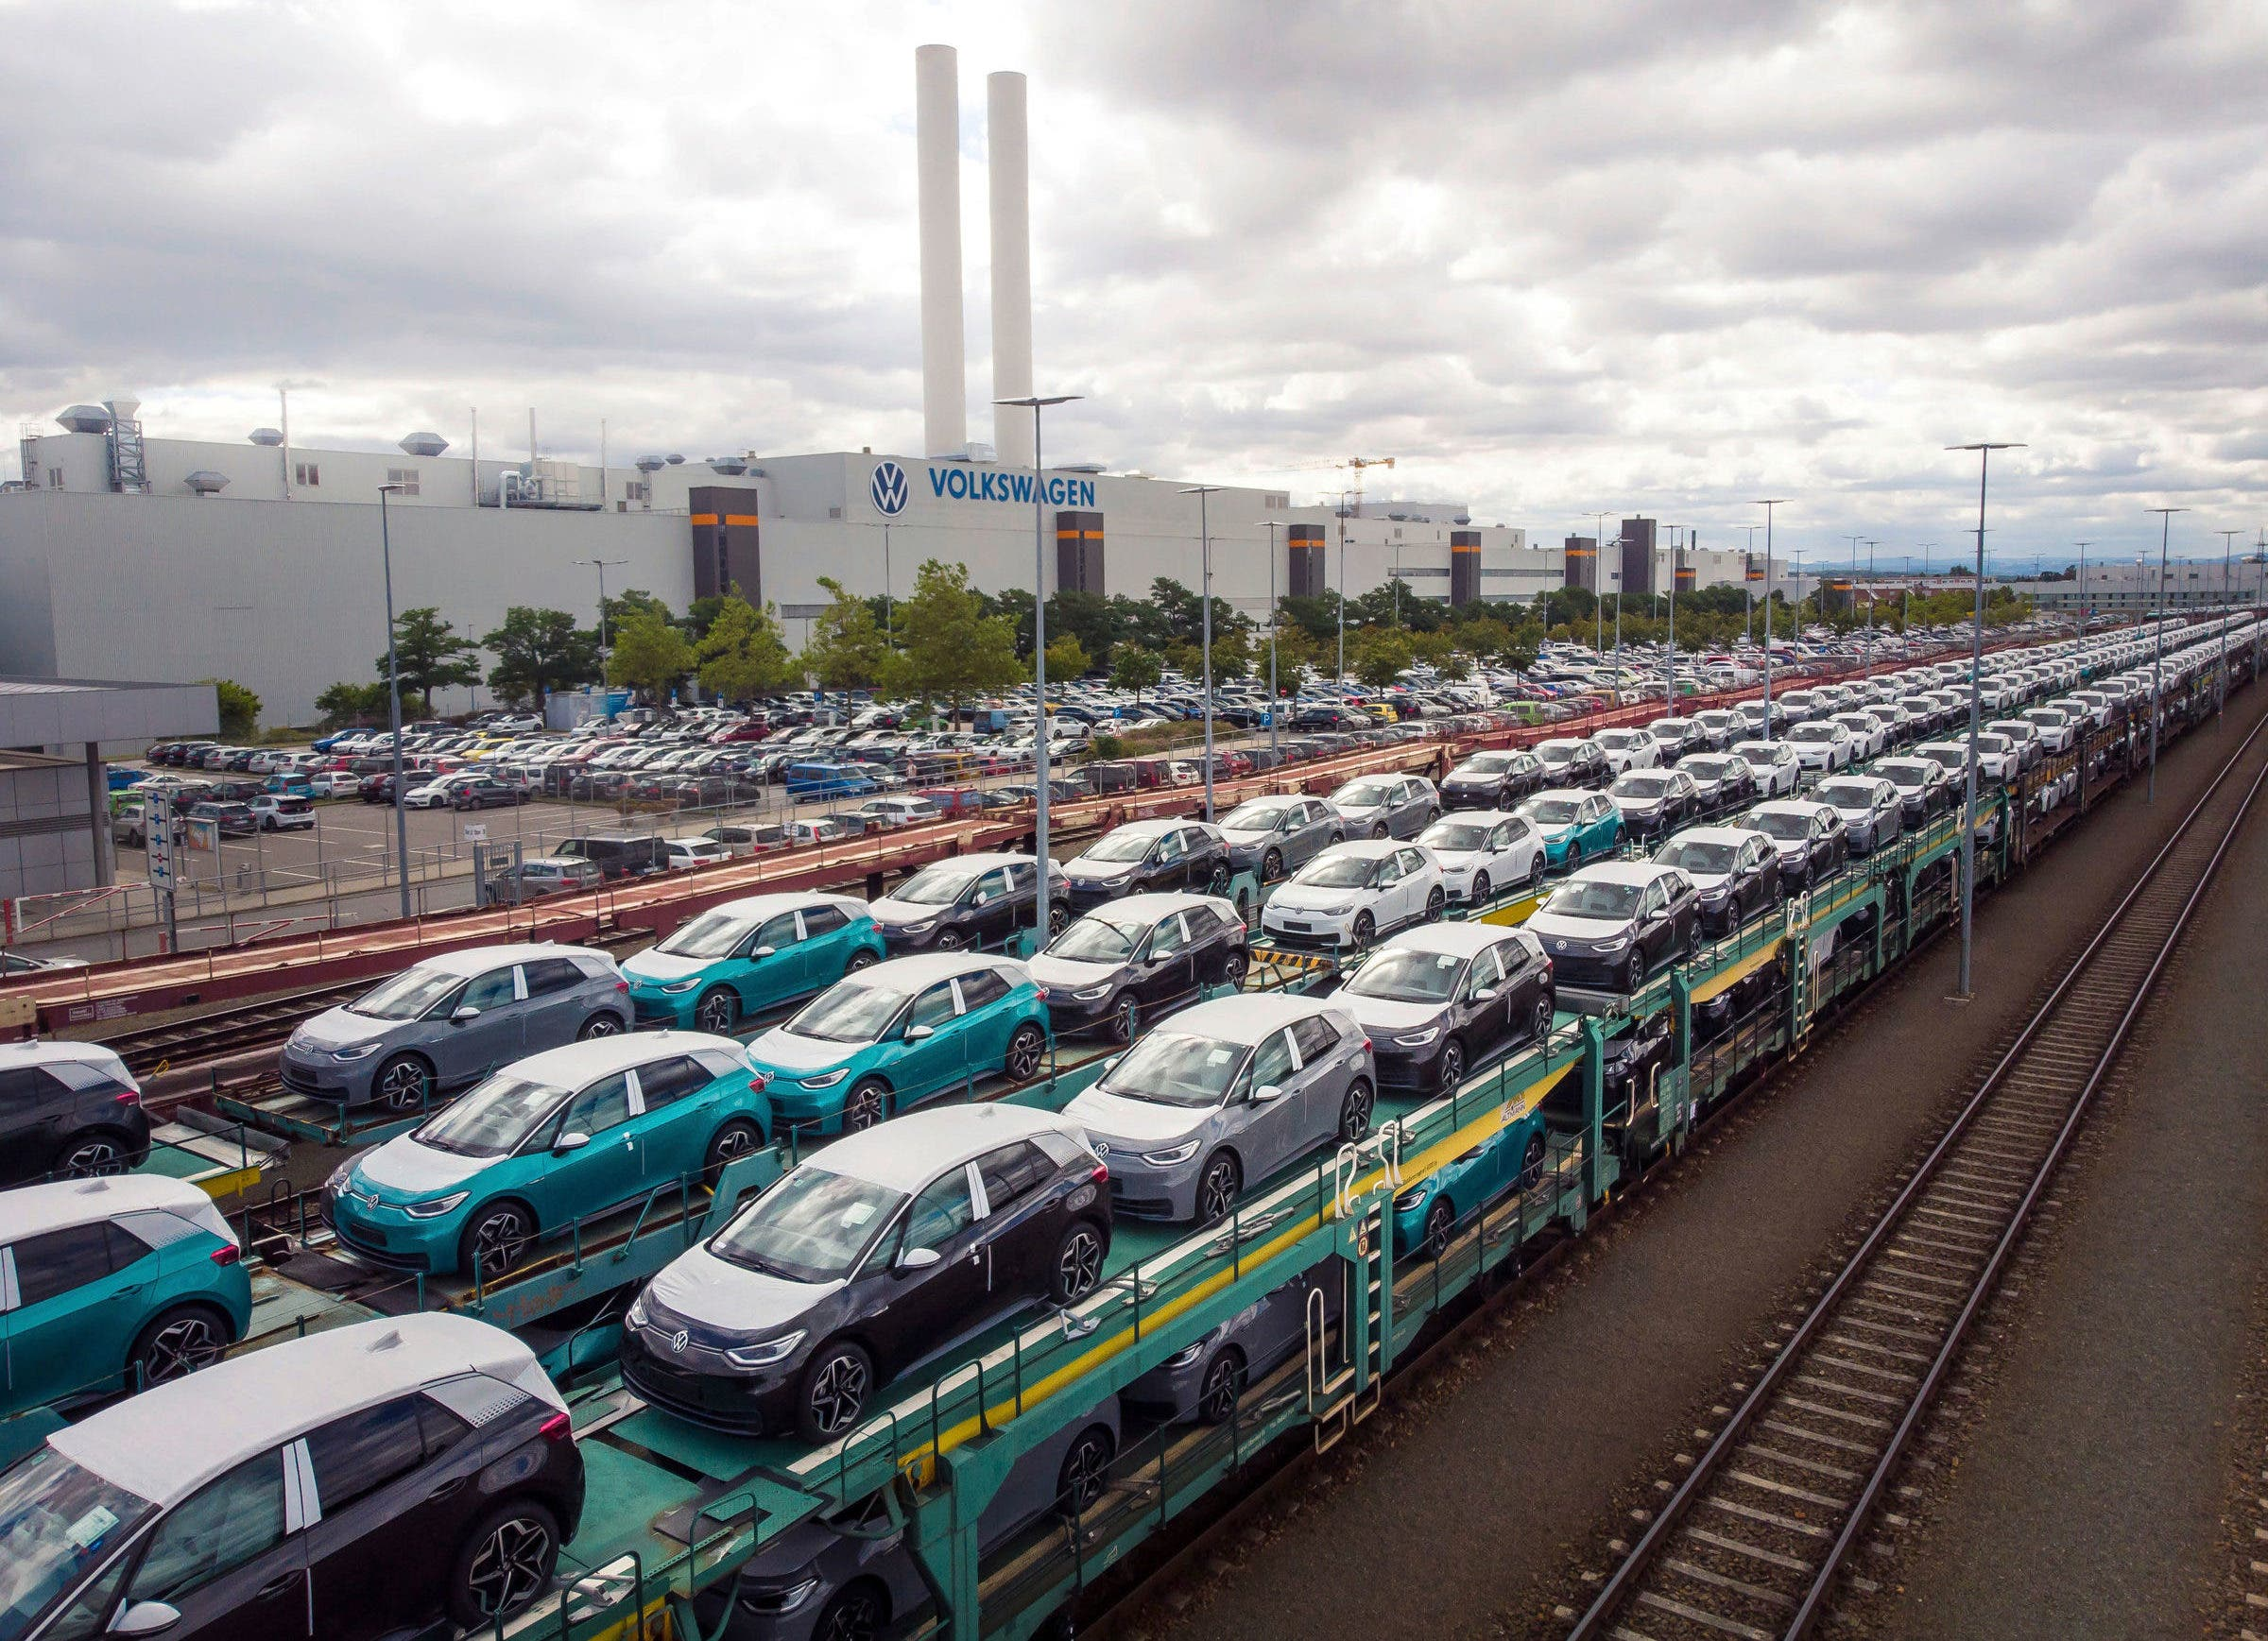 Volkswagen ships cars by train